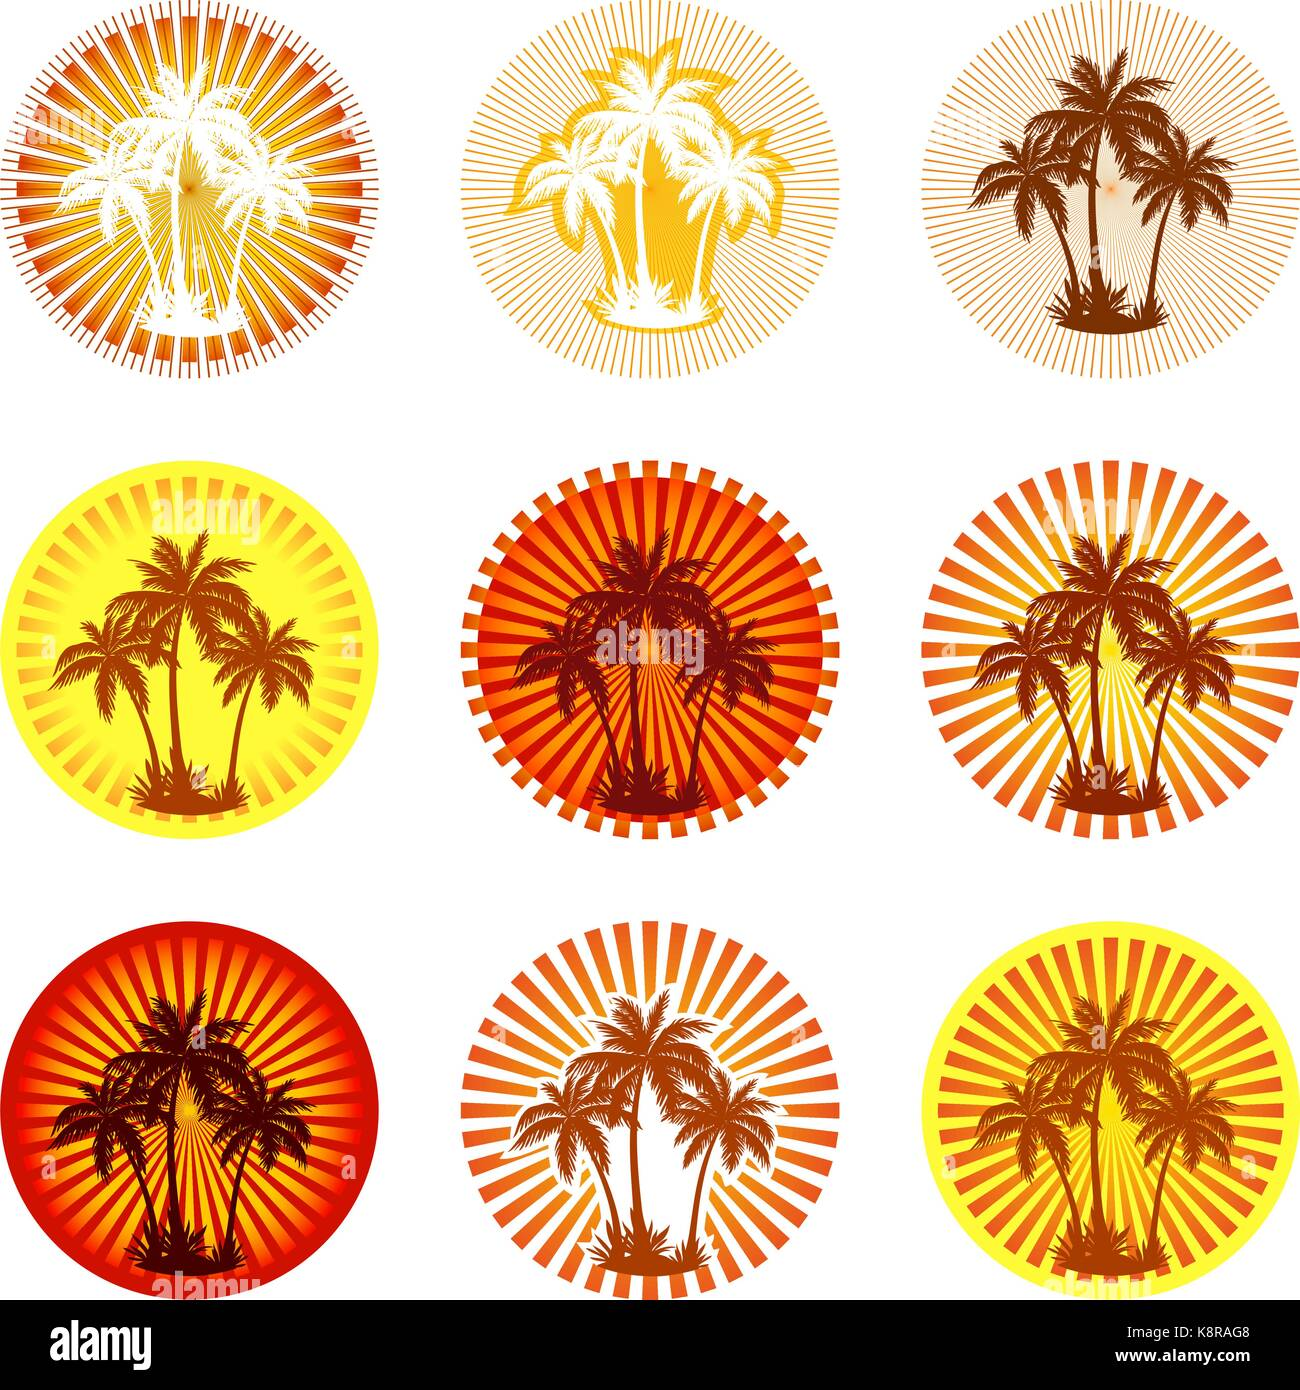 Tropical Landscape with Palms Trees Silhouettes on